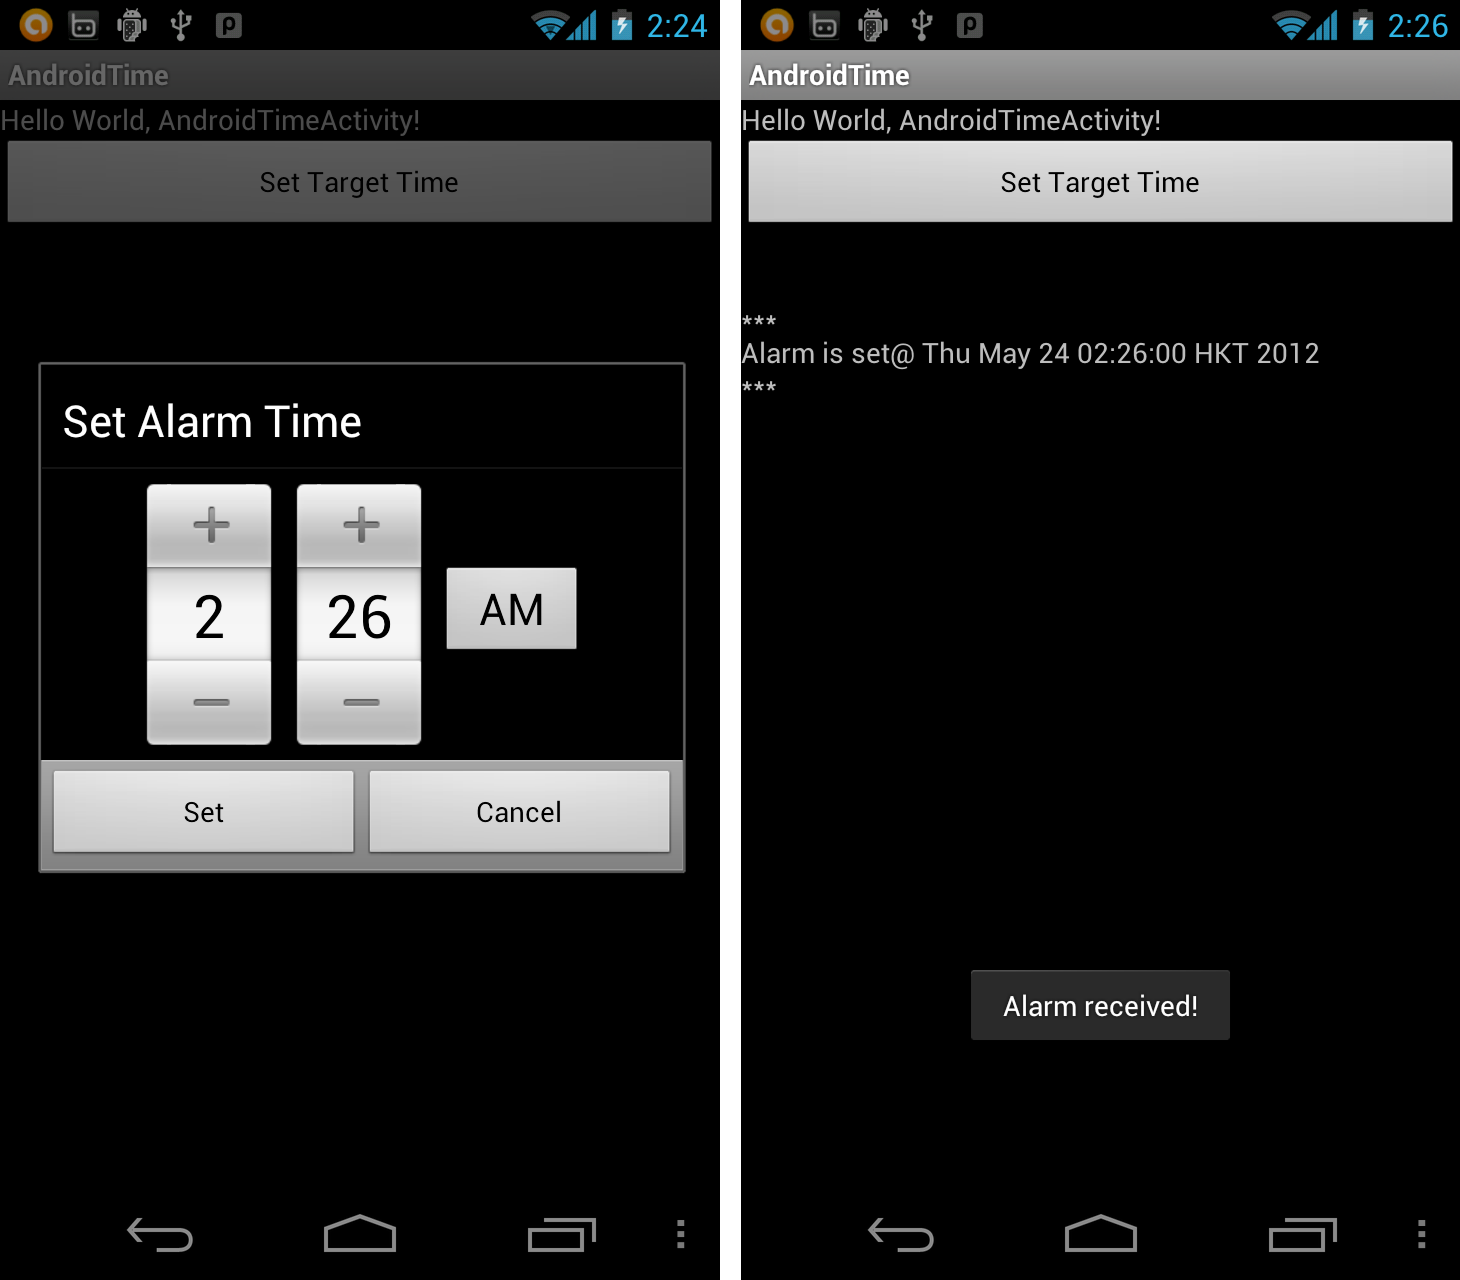 Android-er: Create alarm set on a specified time, using